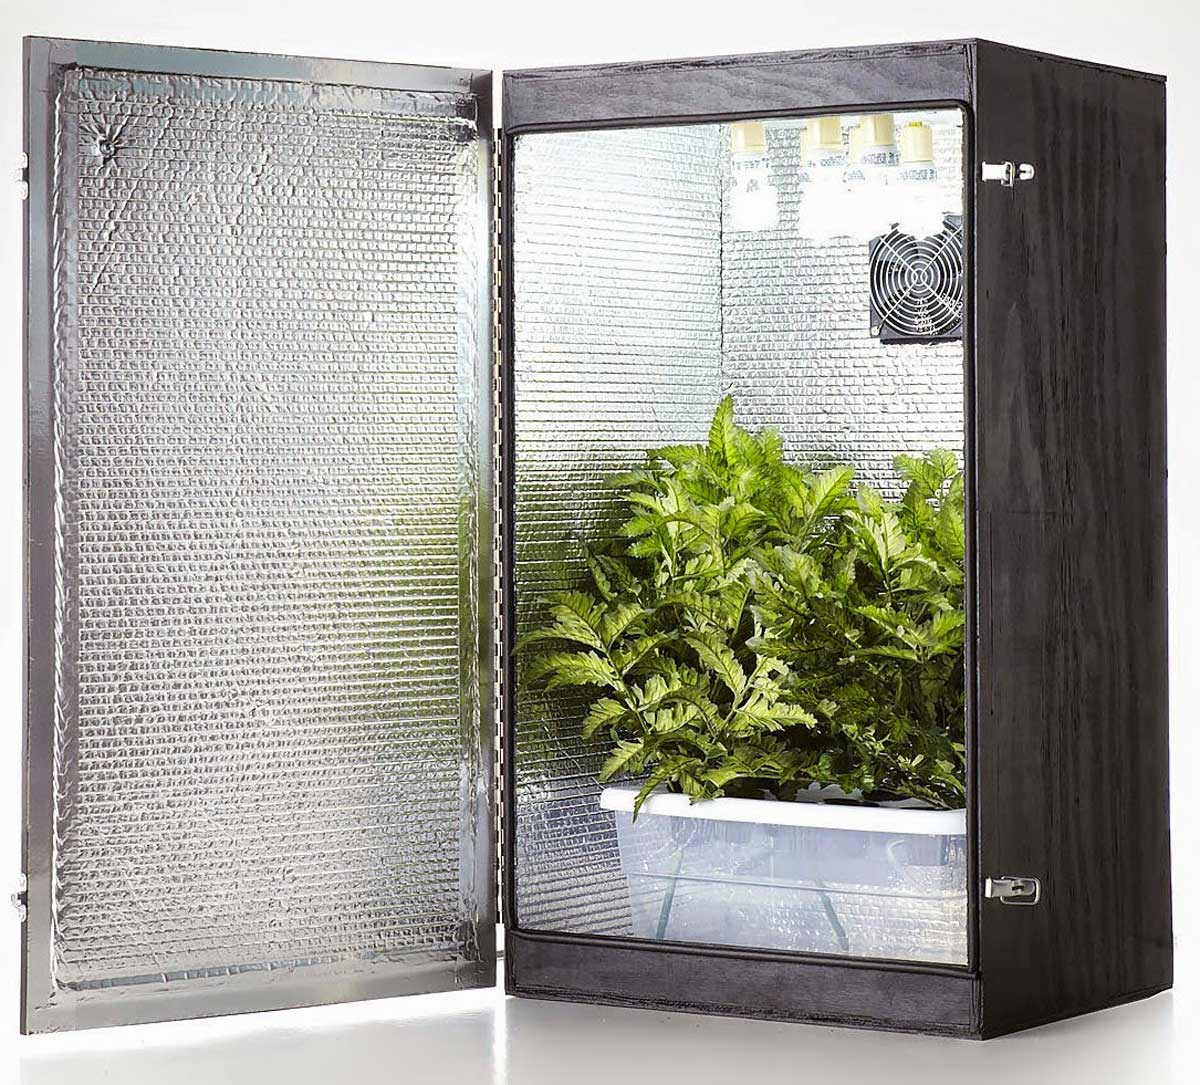 Advantages of Using Grow Boxes for Beginners